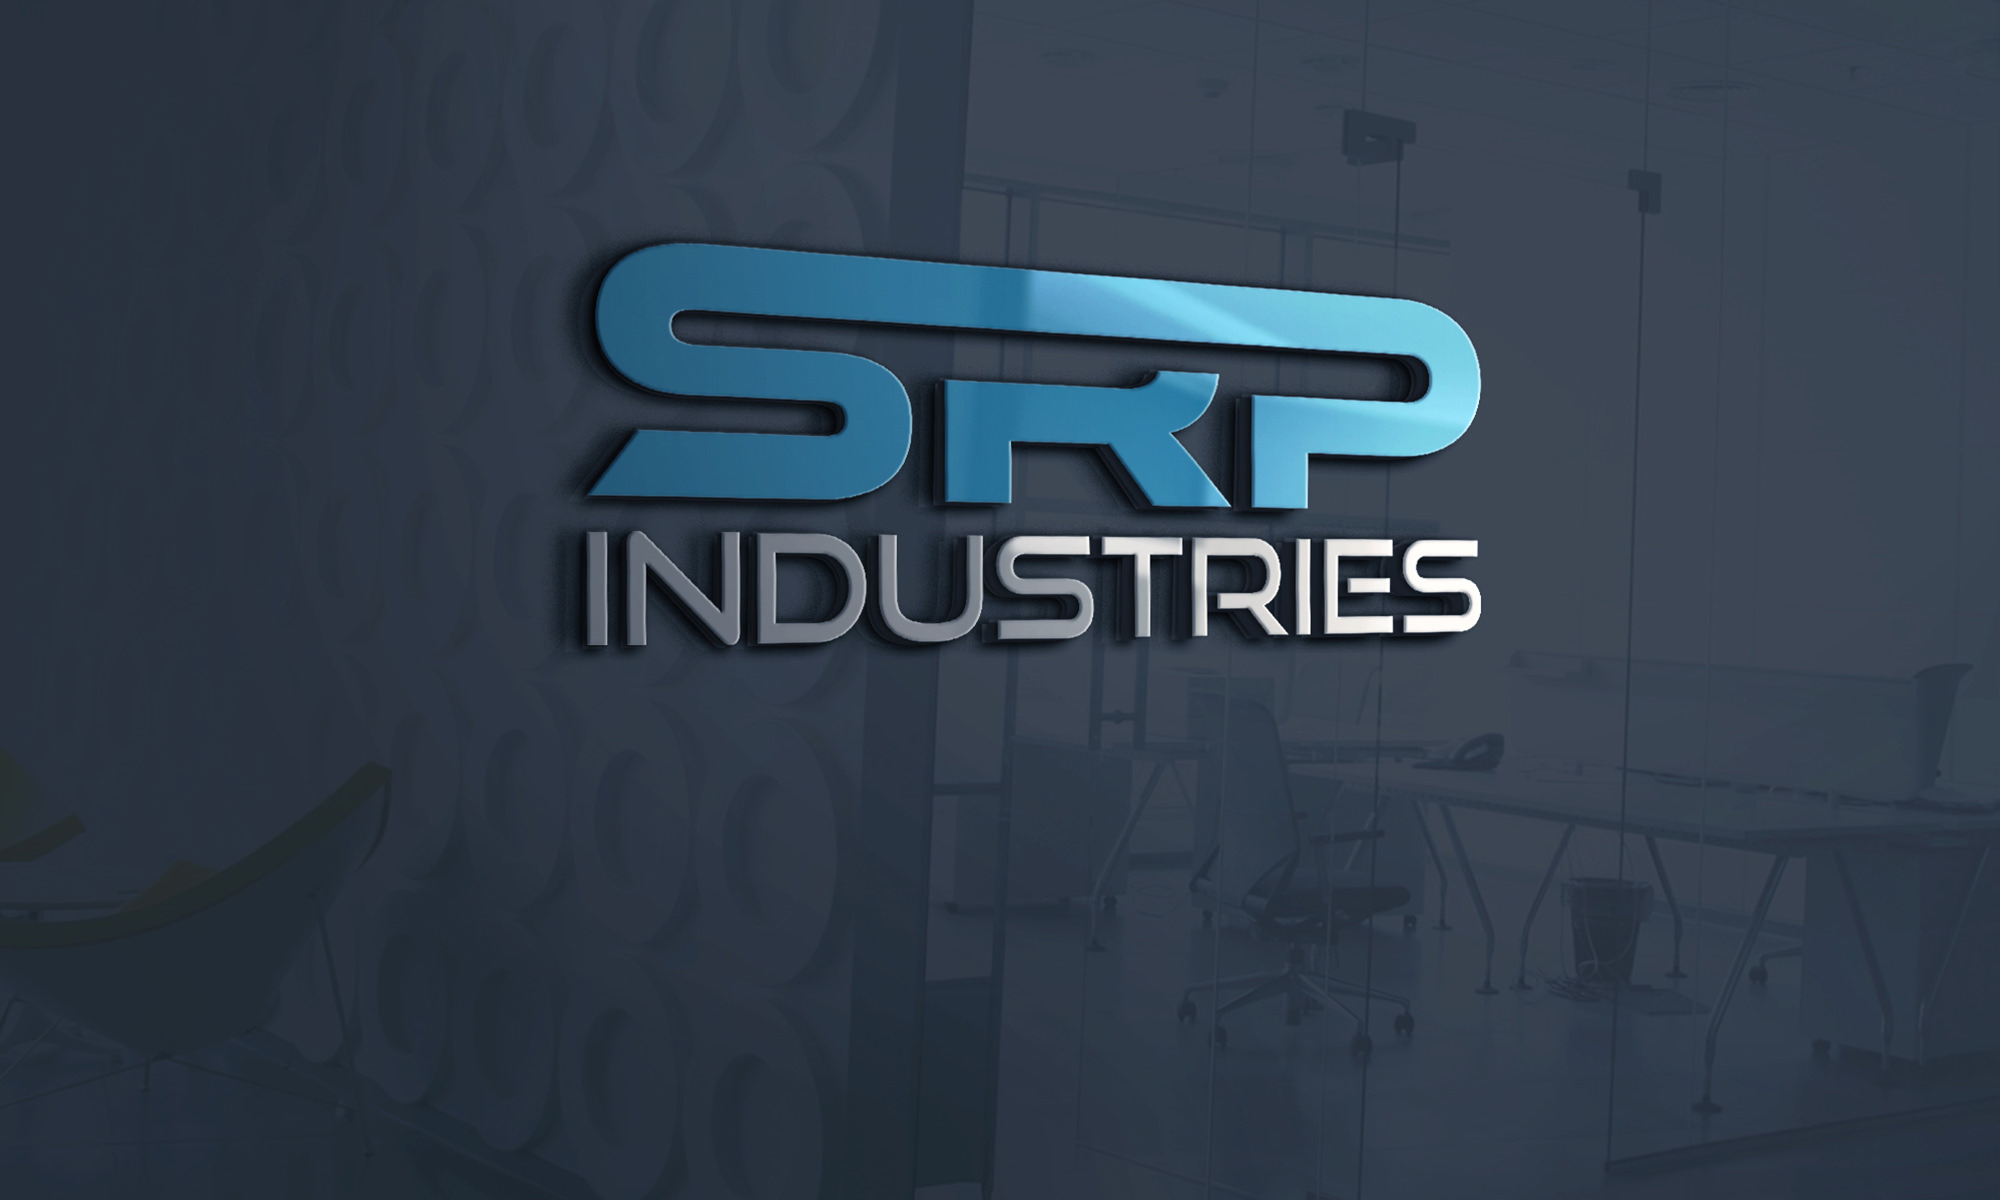 SRP INDUSTRIES, LLC